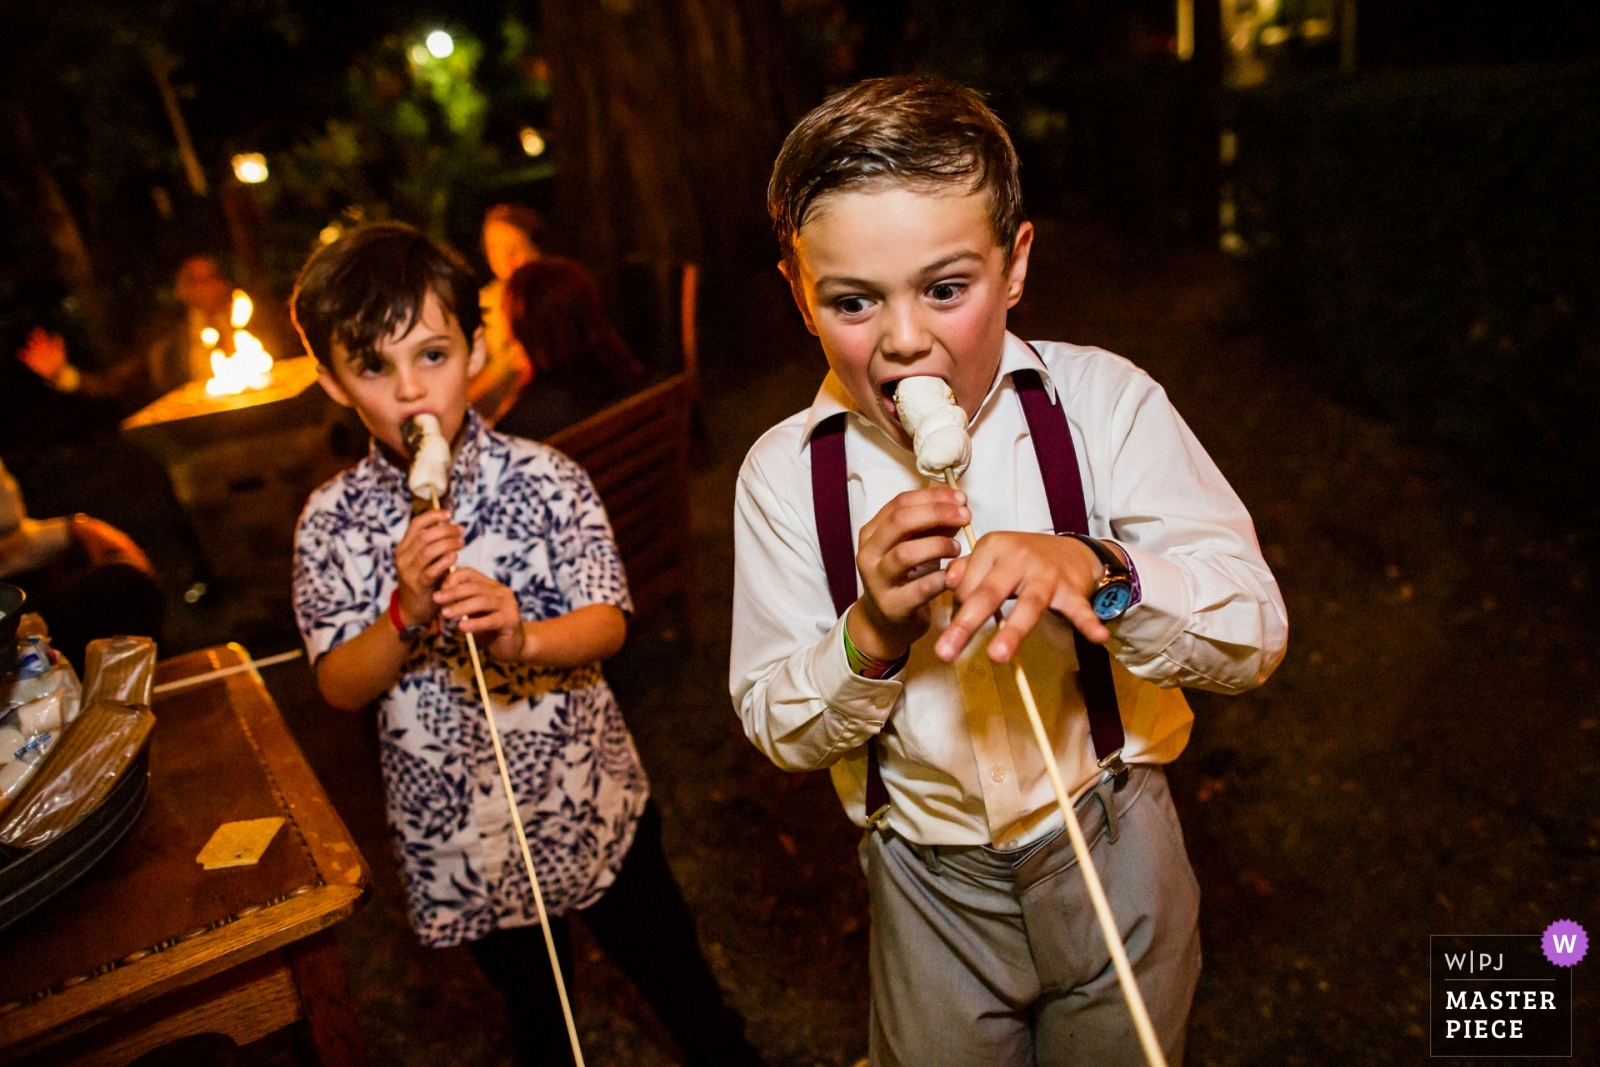 Hot, hot yummy s'mores - San Francisco, California - Northern Wedding Photography -  | Deer Park Villa, Fairfax